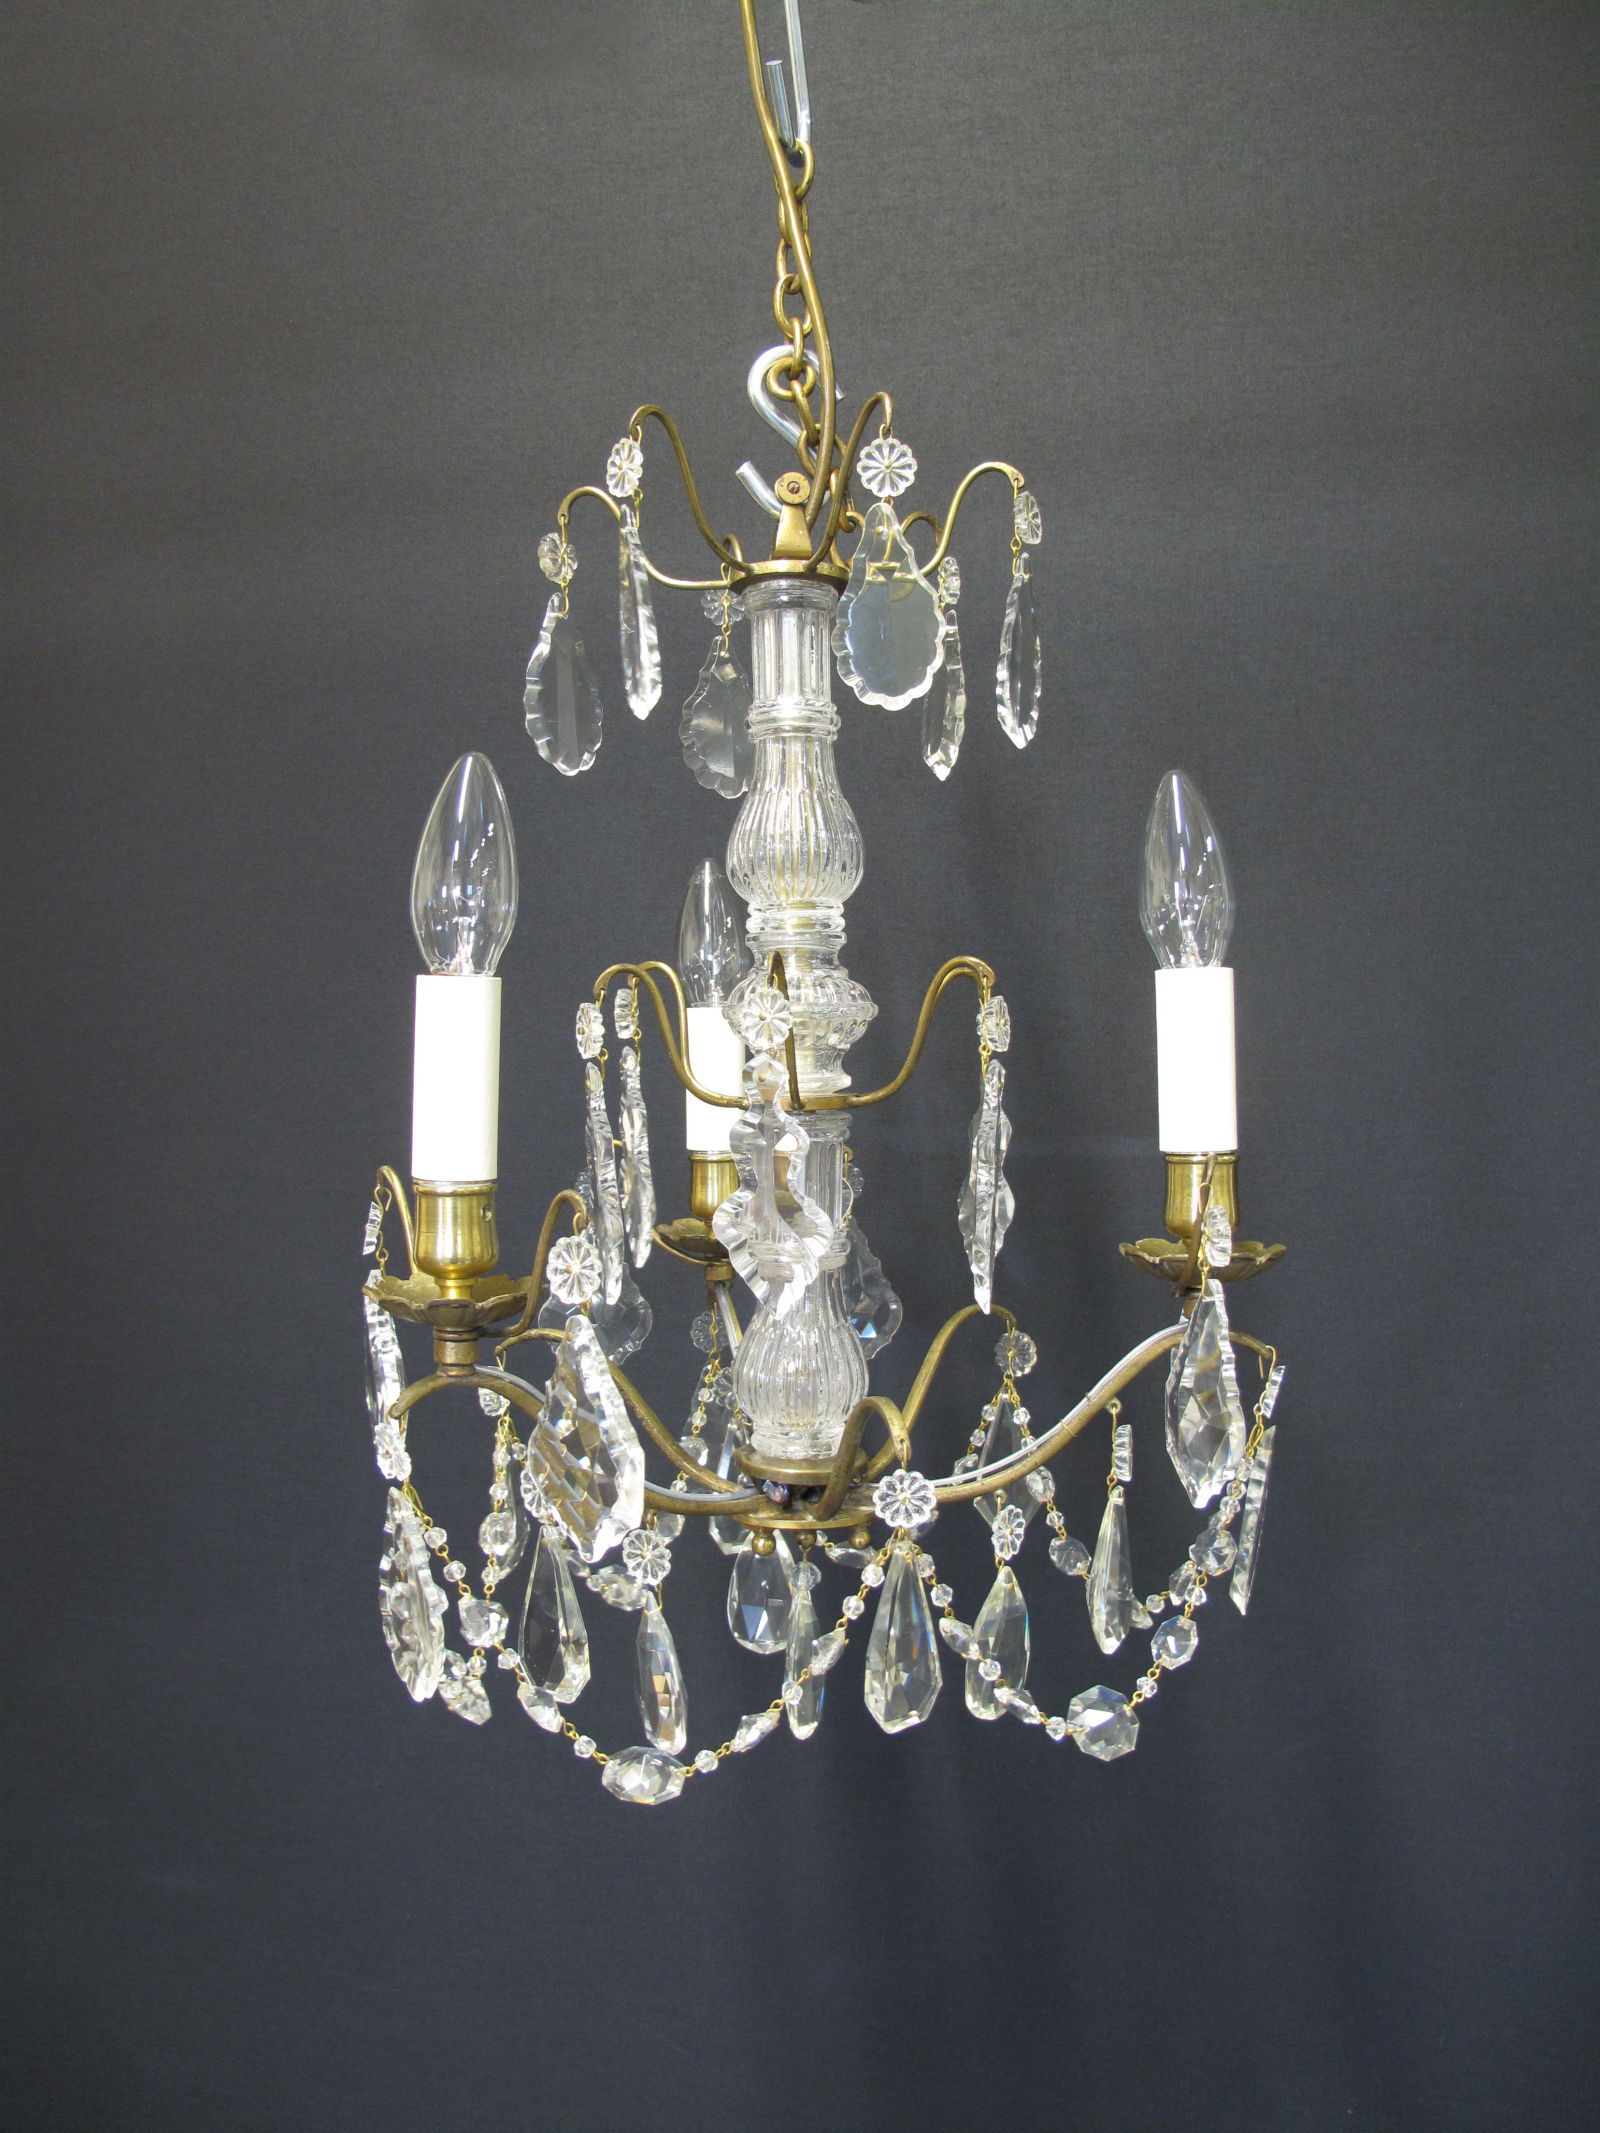 G p cohn antique chandeliers repairs restoration 3 arm french brass chandelier ca 1910 aloadofball Image collections